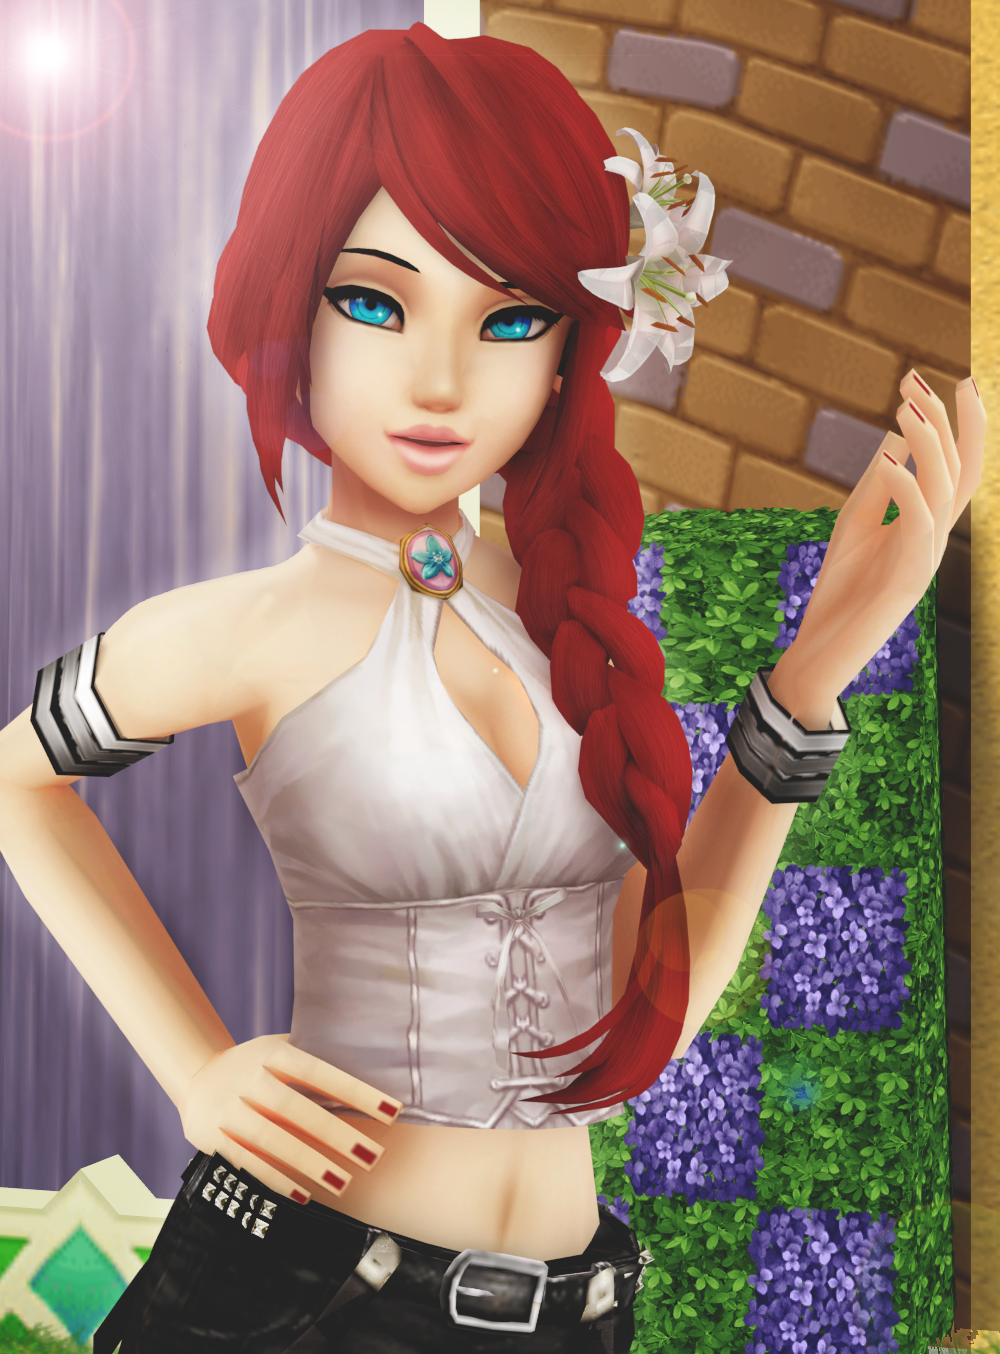 Vidro Commission | Red haired beauty by SnowEmbrace